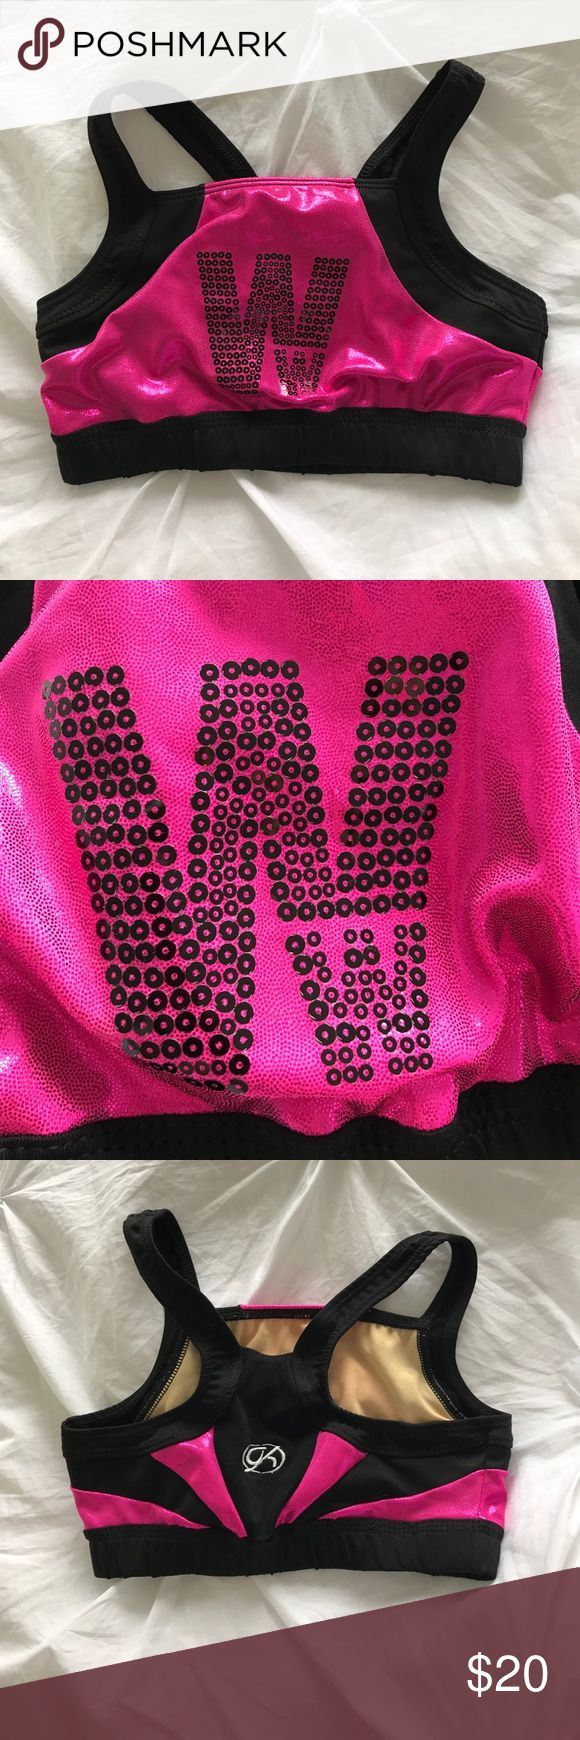 Gk Elite Woodward sports bra Pink and black Woodward cheerleading camp sports bra- sequins- size adult petite which is basically just a xs Intimates & Sleepwear Bras